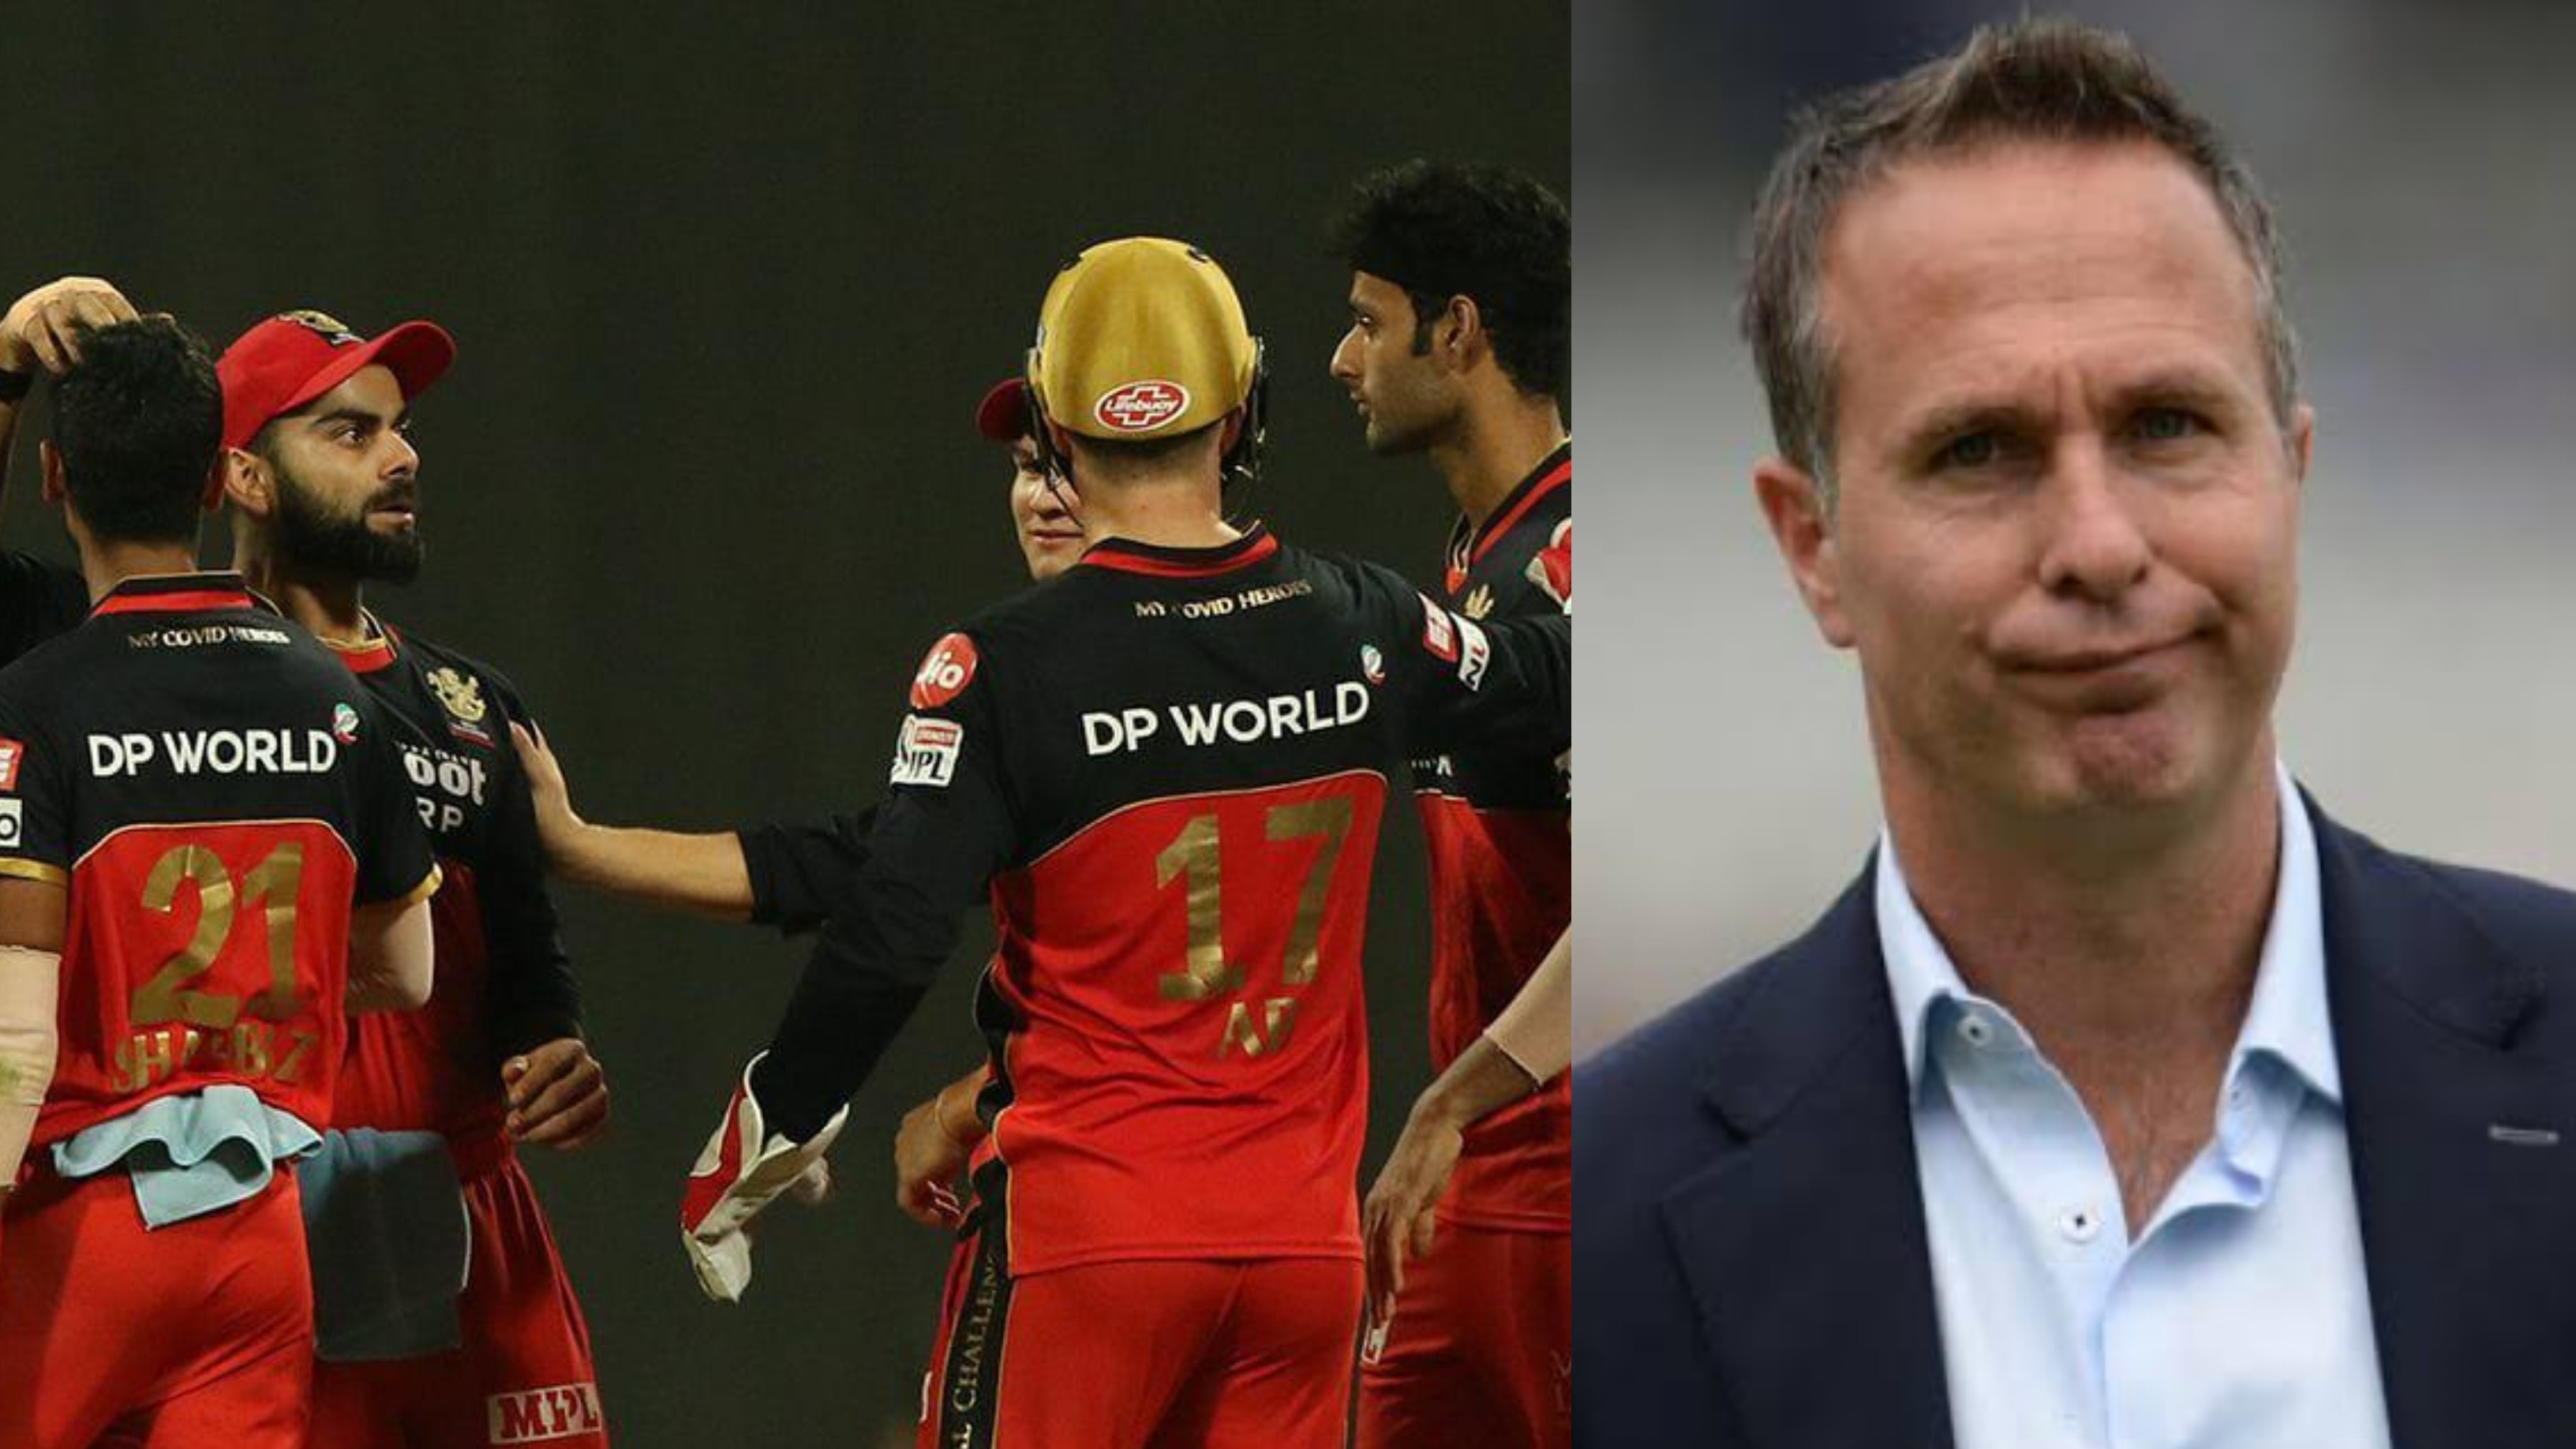 IPL 2020: Michael Vaughan says RCB doesn't have enough firepower to lift IPL 13 trophy